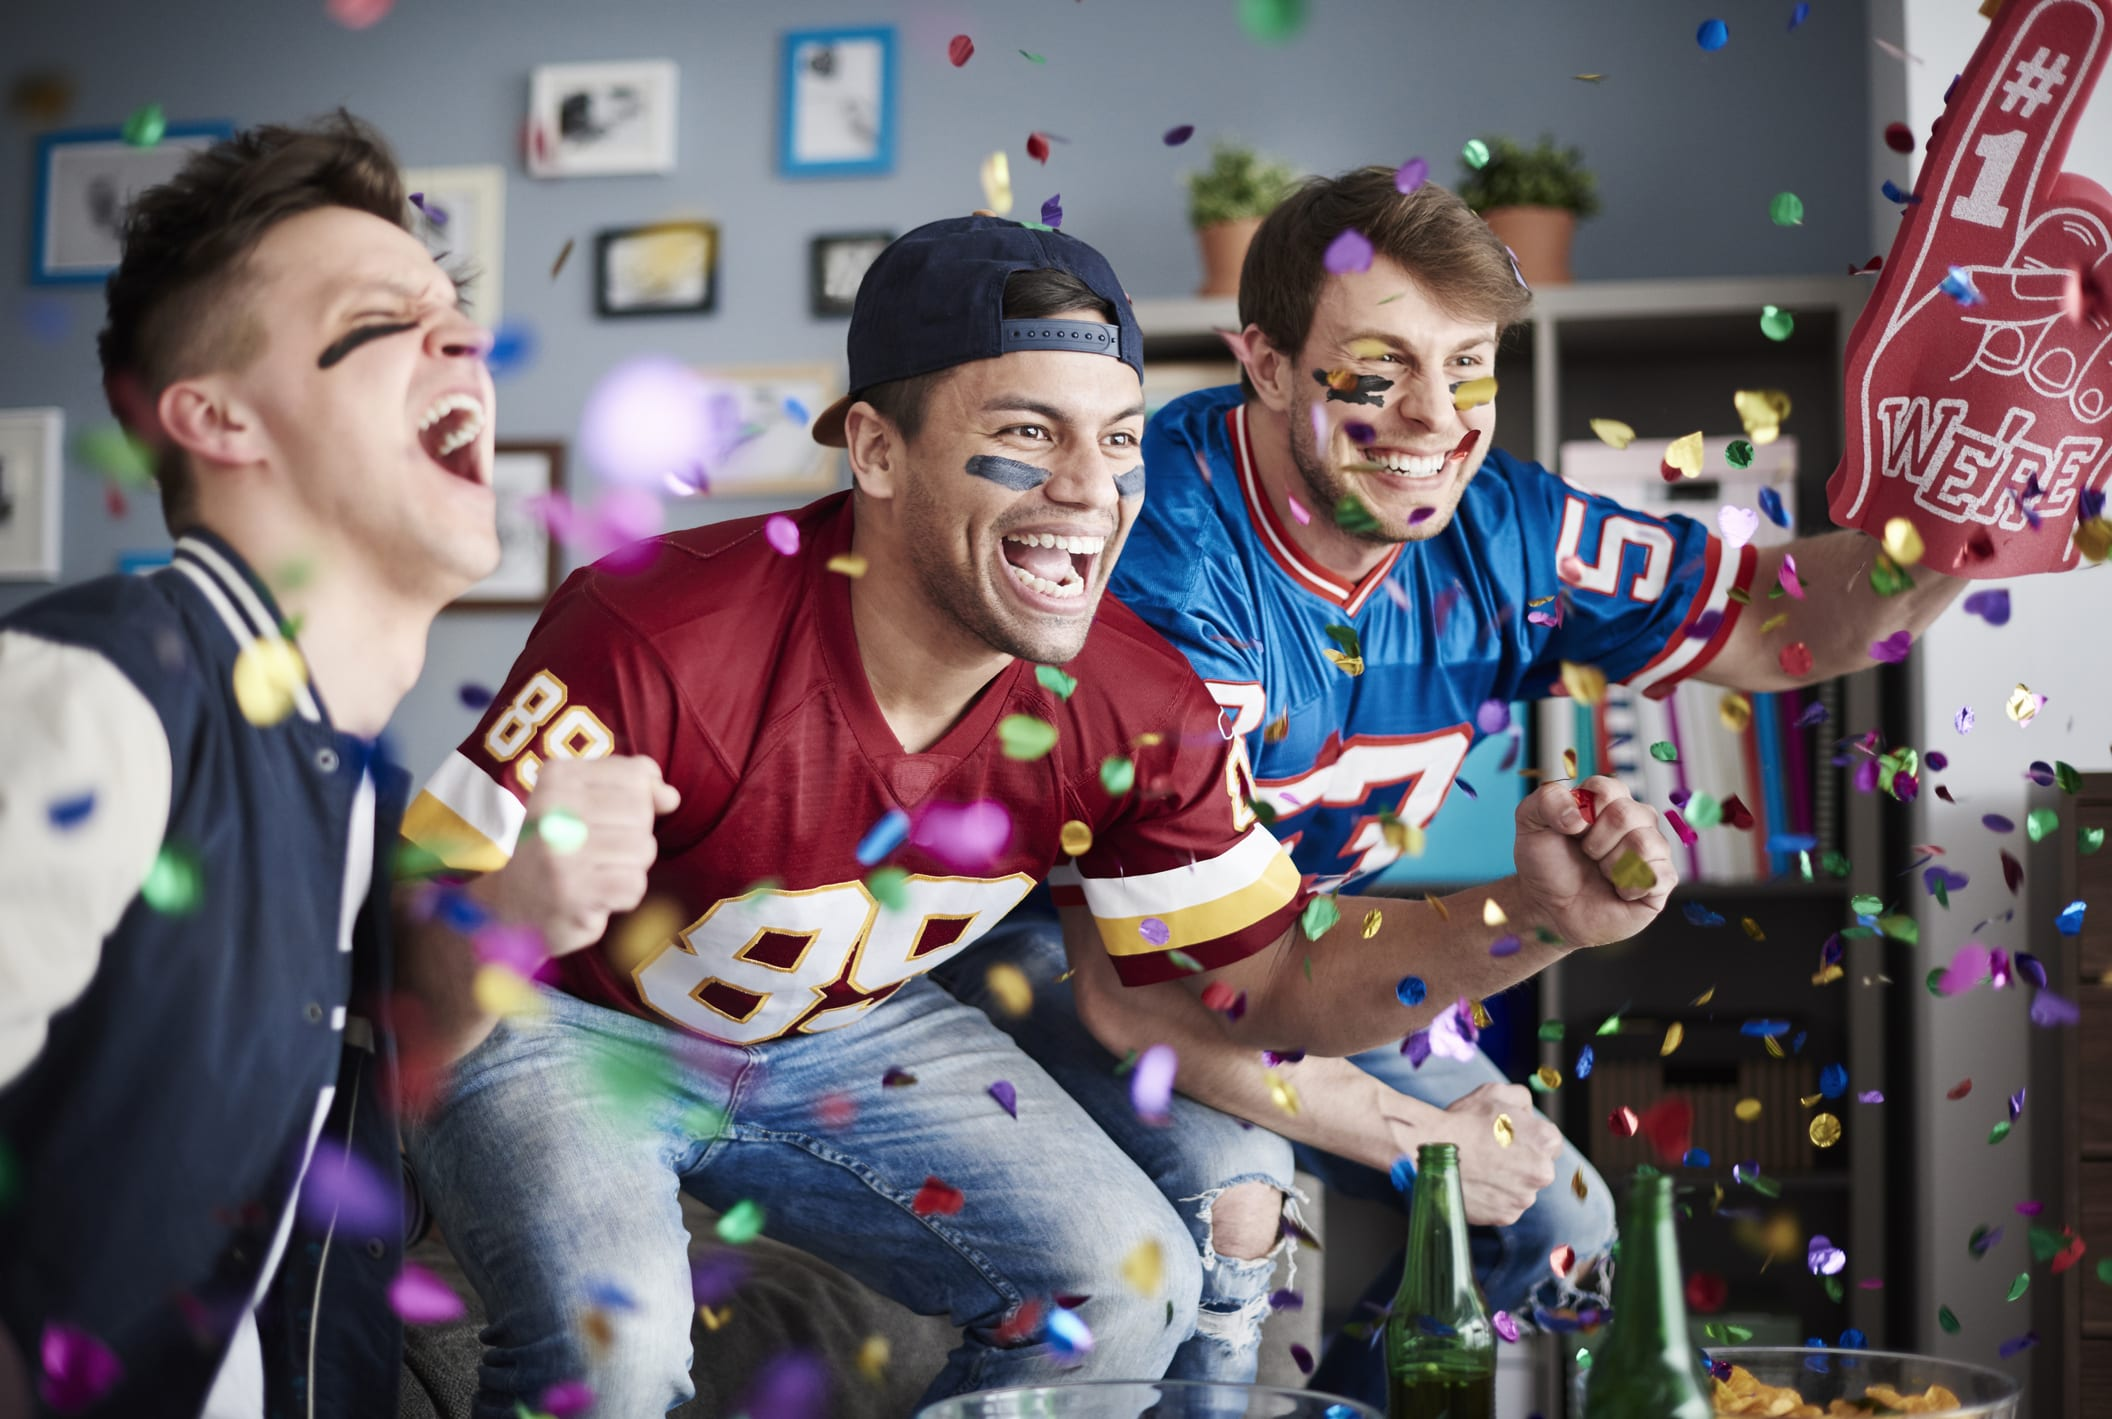 Cheering Super Bowl Party